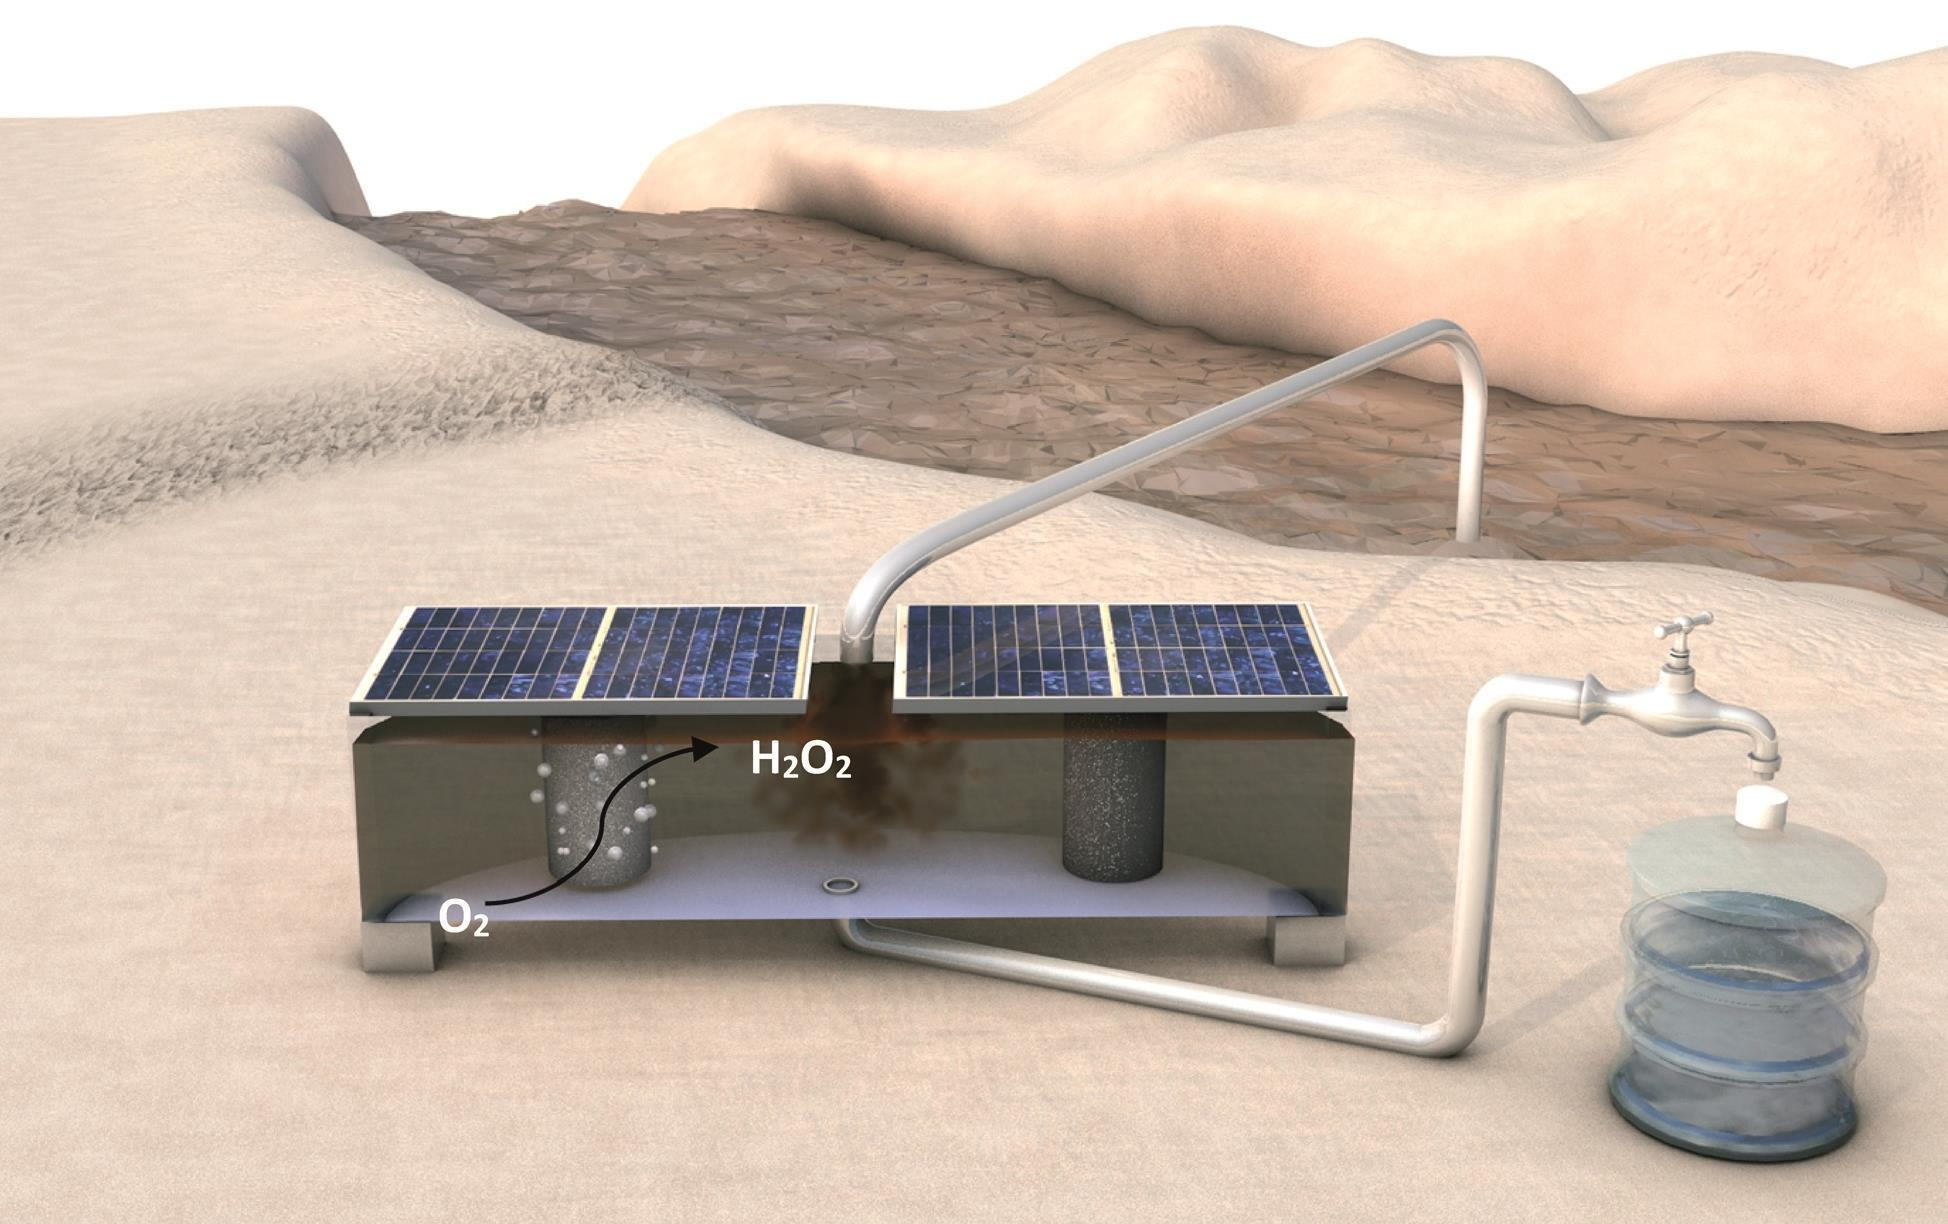 Hydrogen peroxide generator could provide millions with